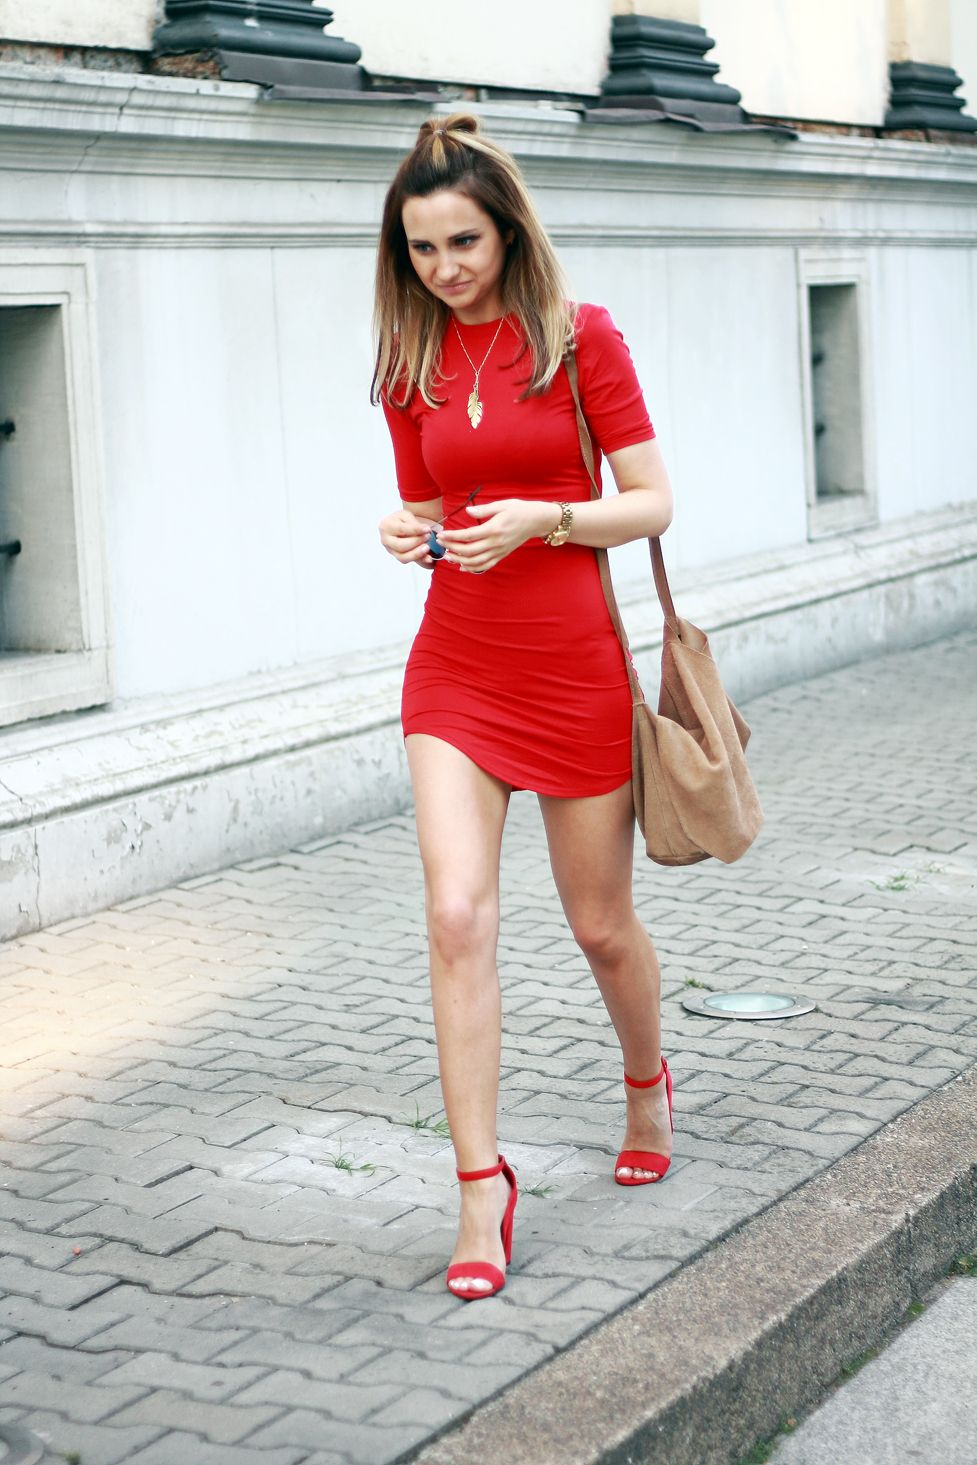 street style fashion red dress heels blonde girl tumblr ...